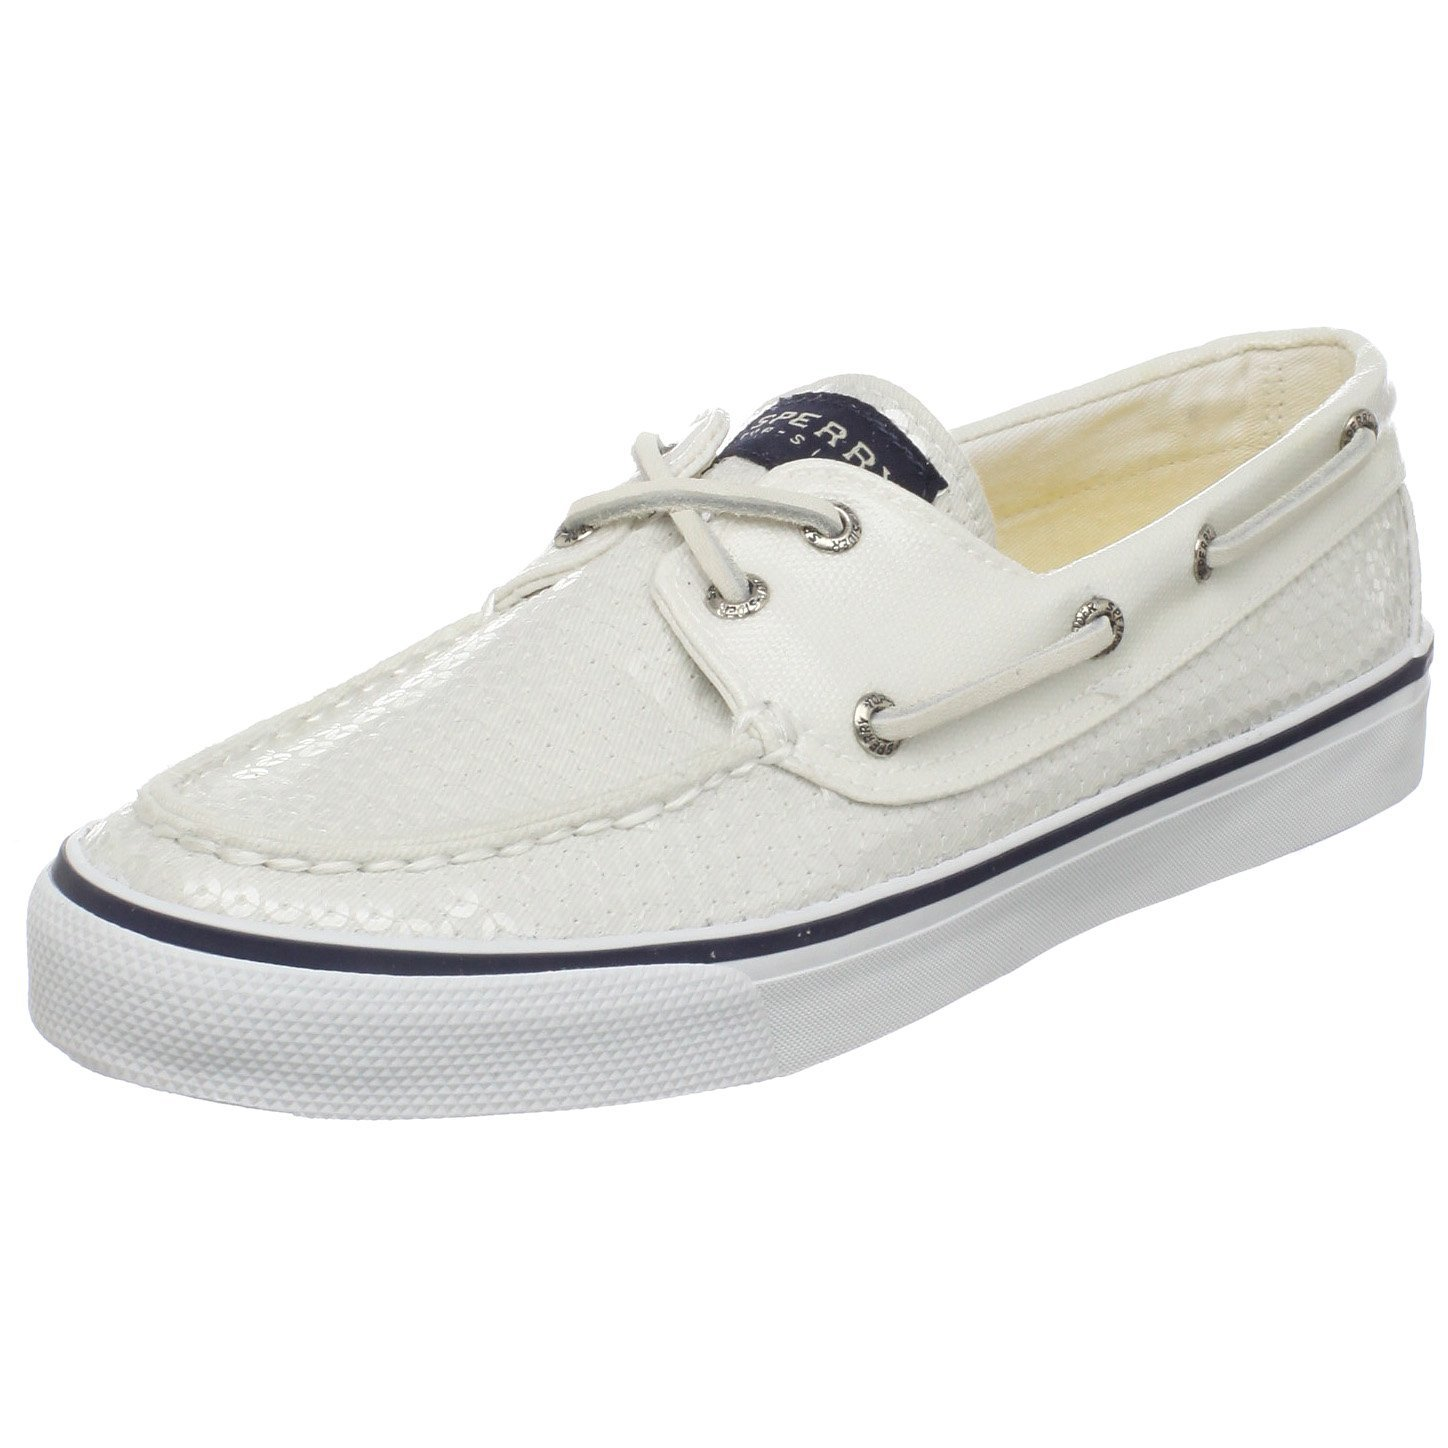 sperry top sider womens bahama sequins boat shoe in white